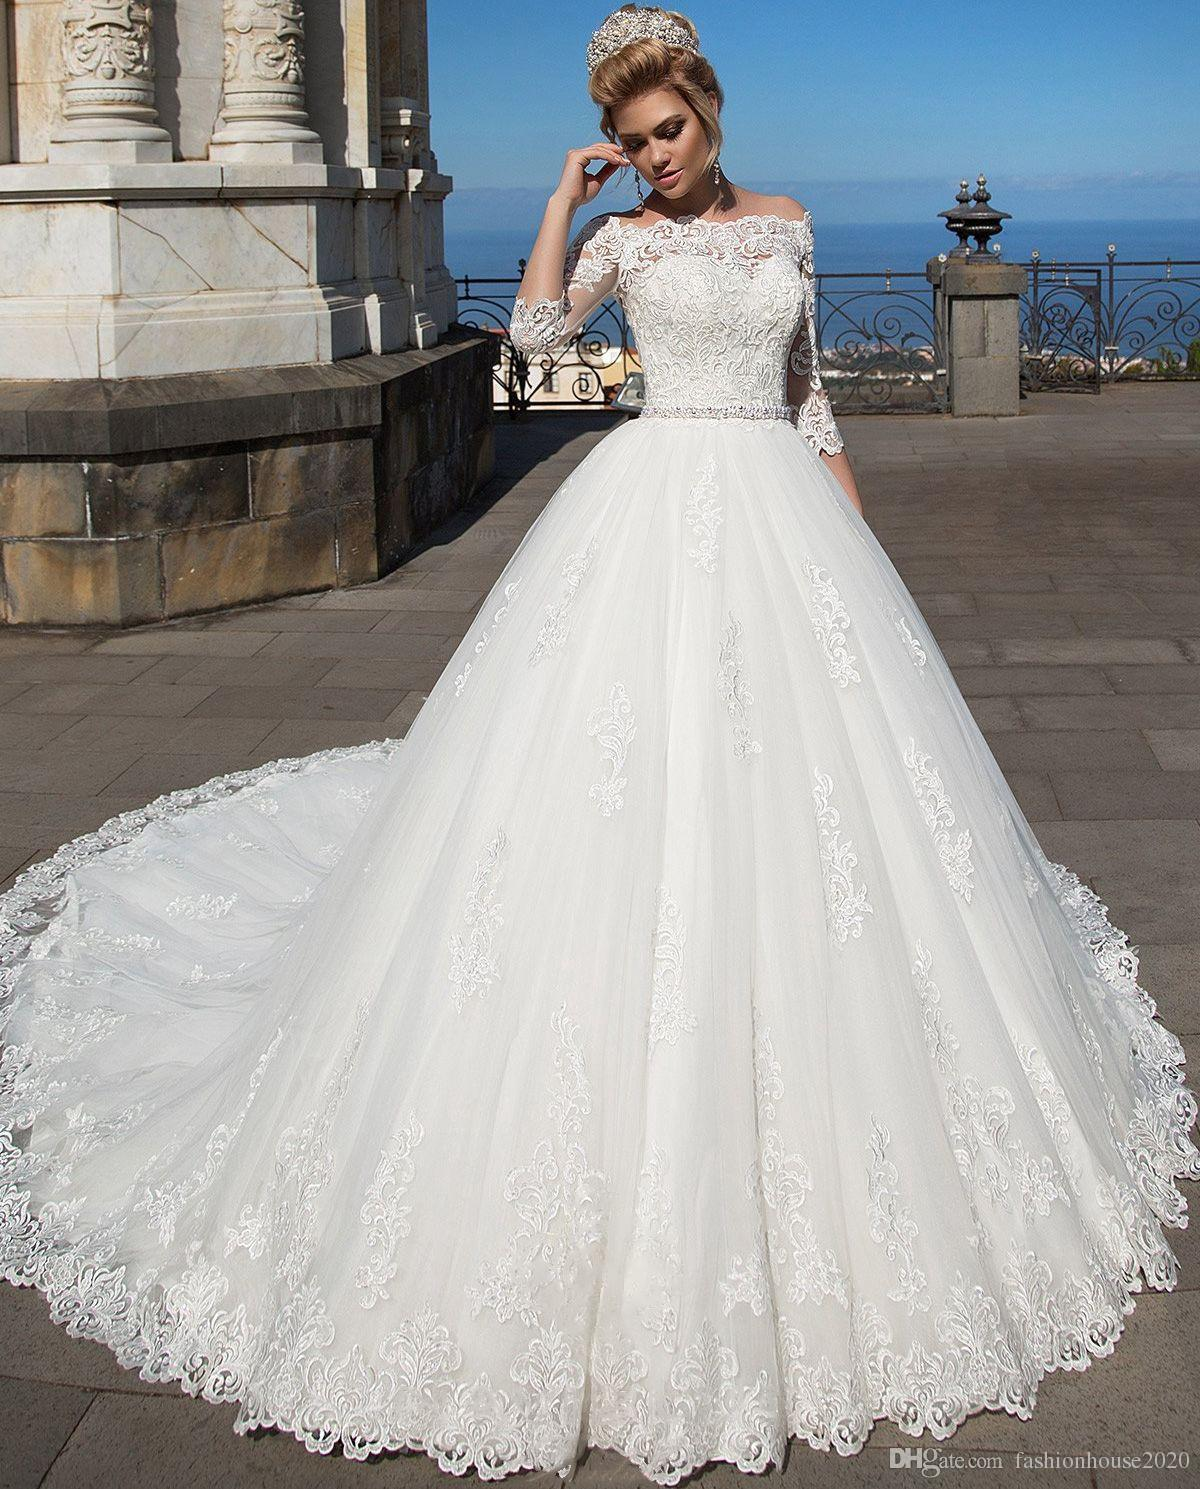 2018 Cheap Elegant White Lace Ball Gown Wedding Dresses With Sleeves ...